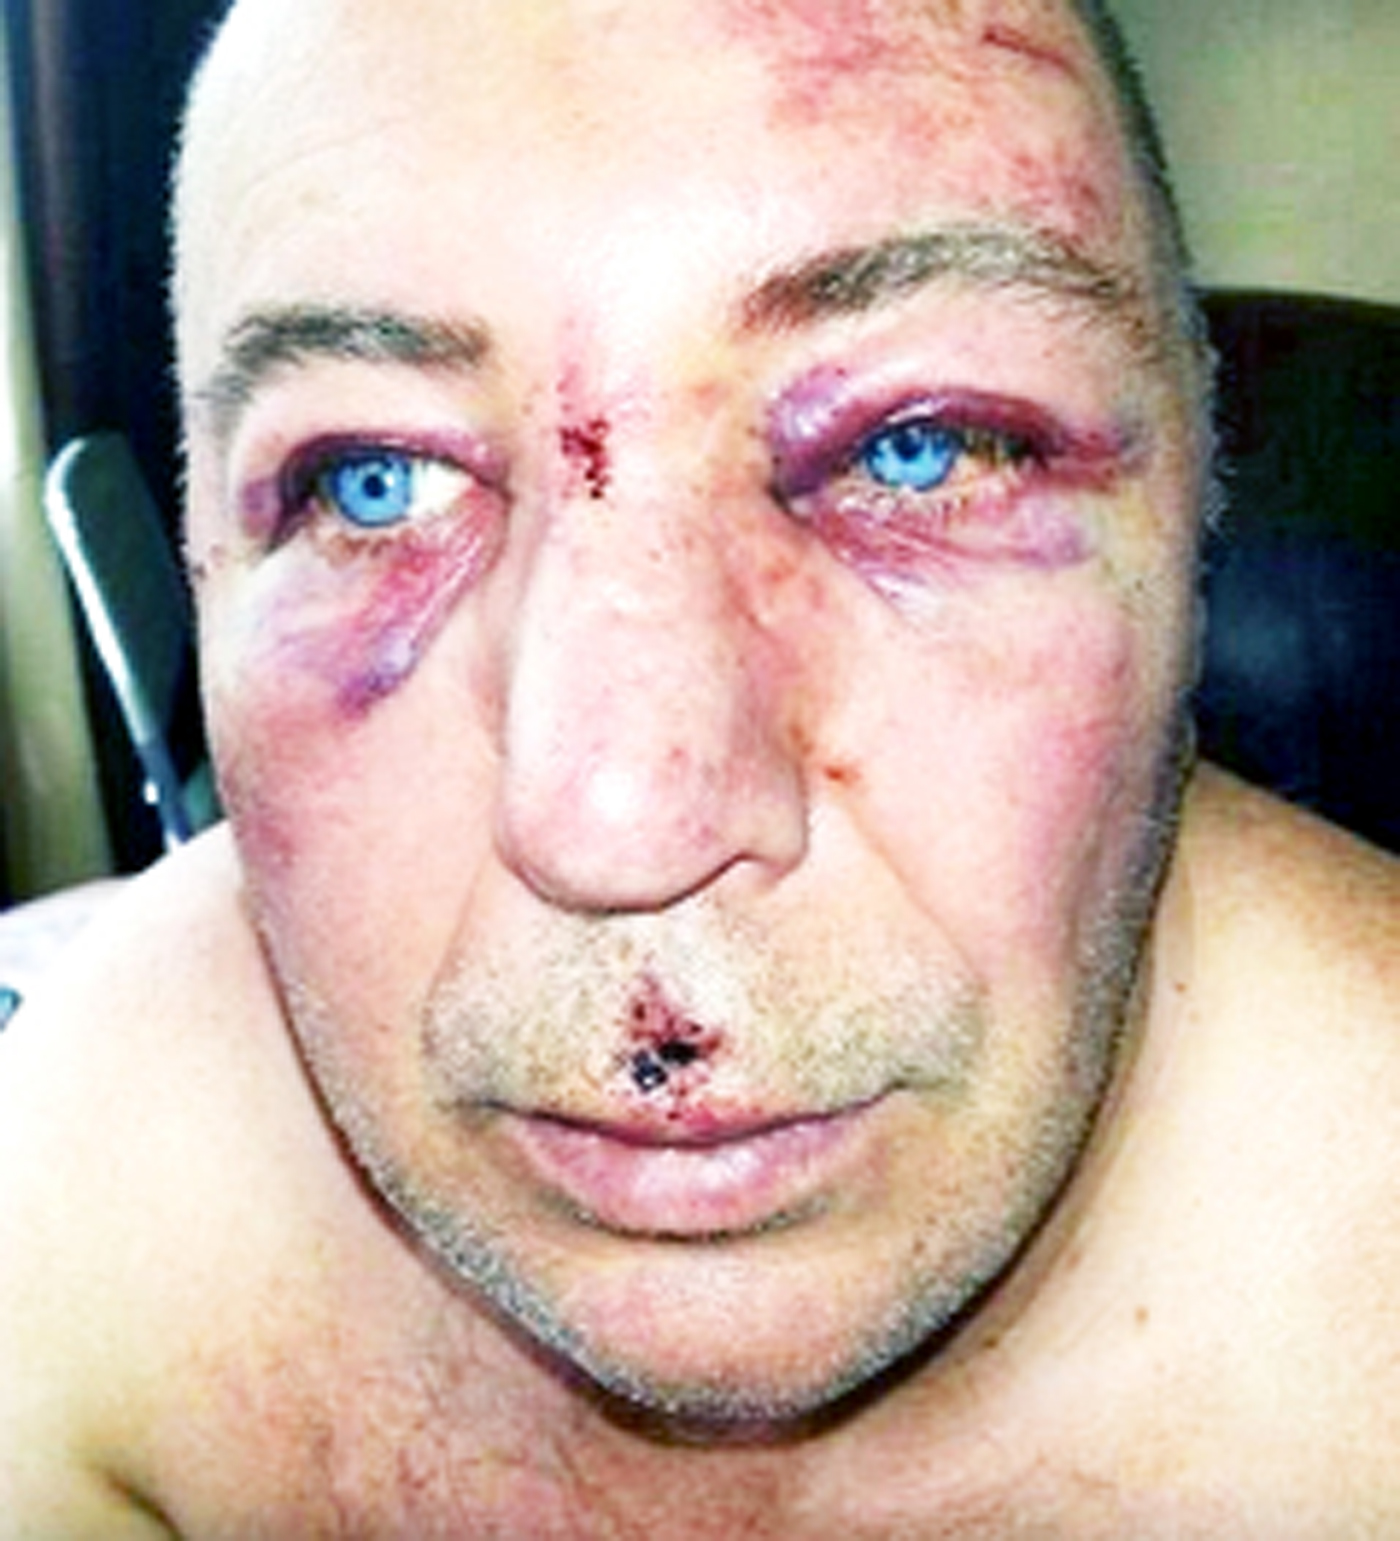 Ramsbottom United manager's dad suffers facial injuries after umbrella attack